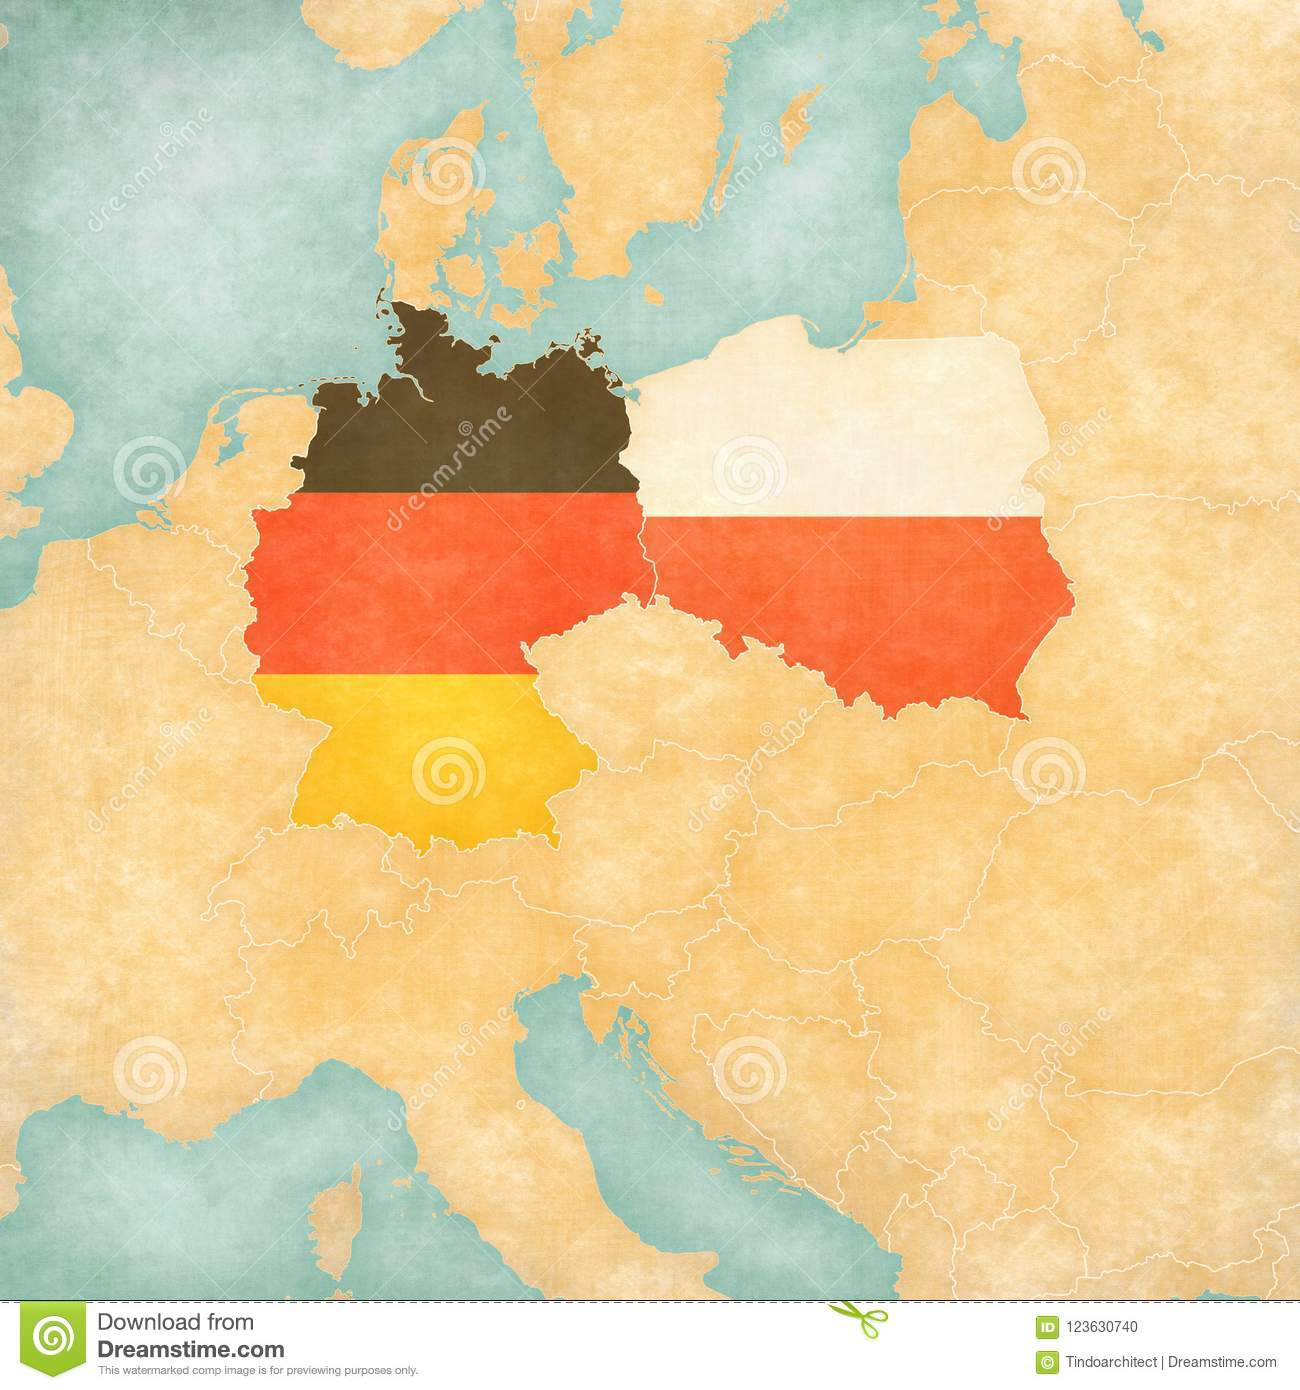 Map Of Central Europe - Germany And Poland Stock Illustration ...